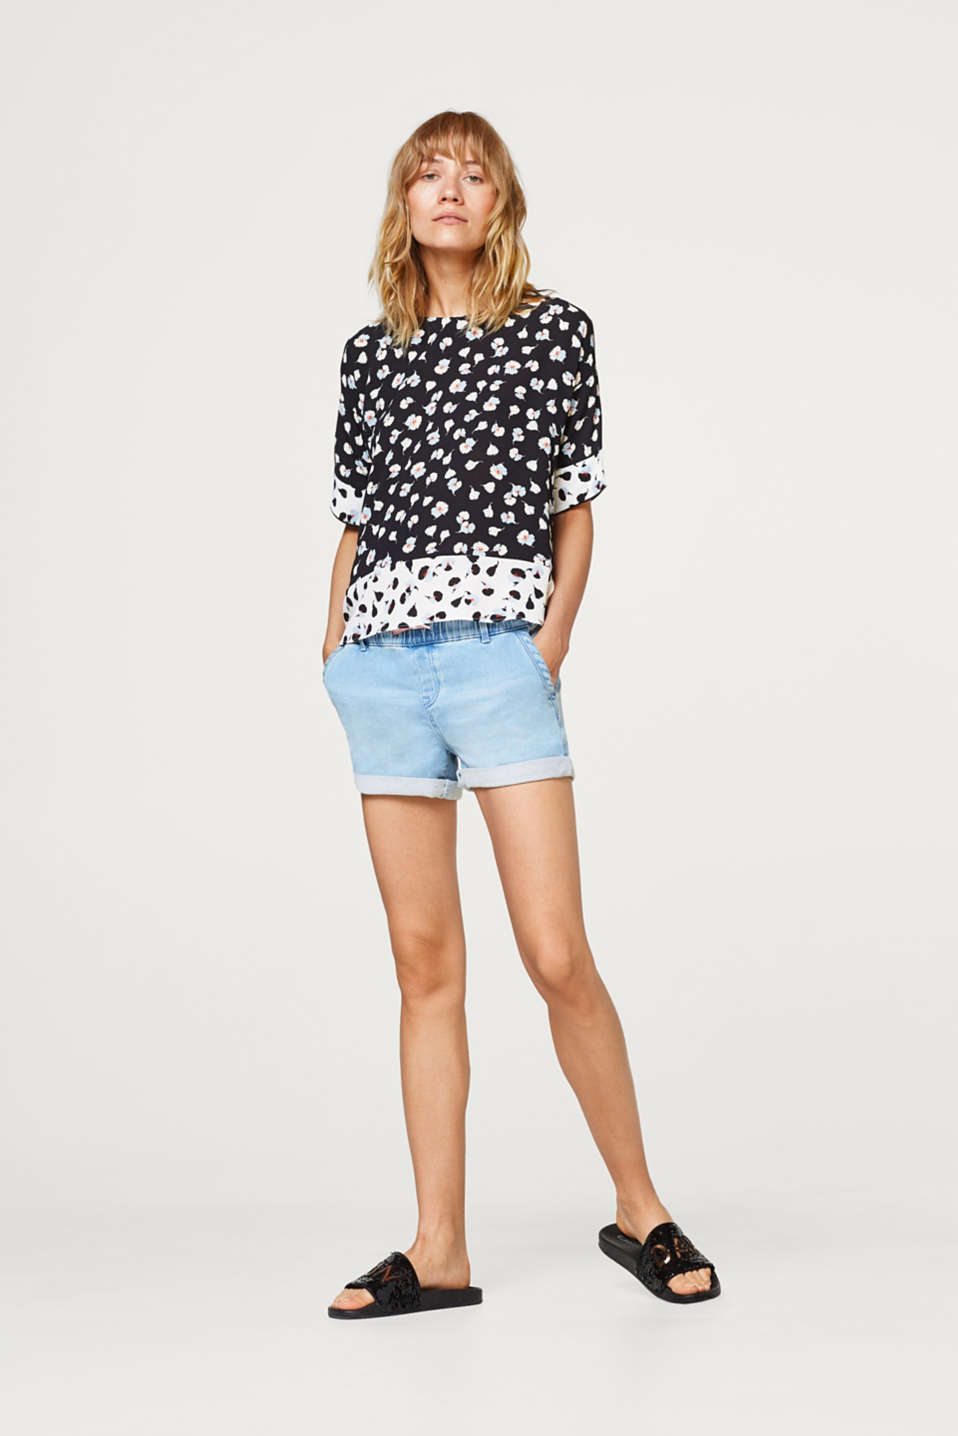 Crêpe blouse with a floral print